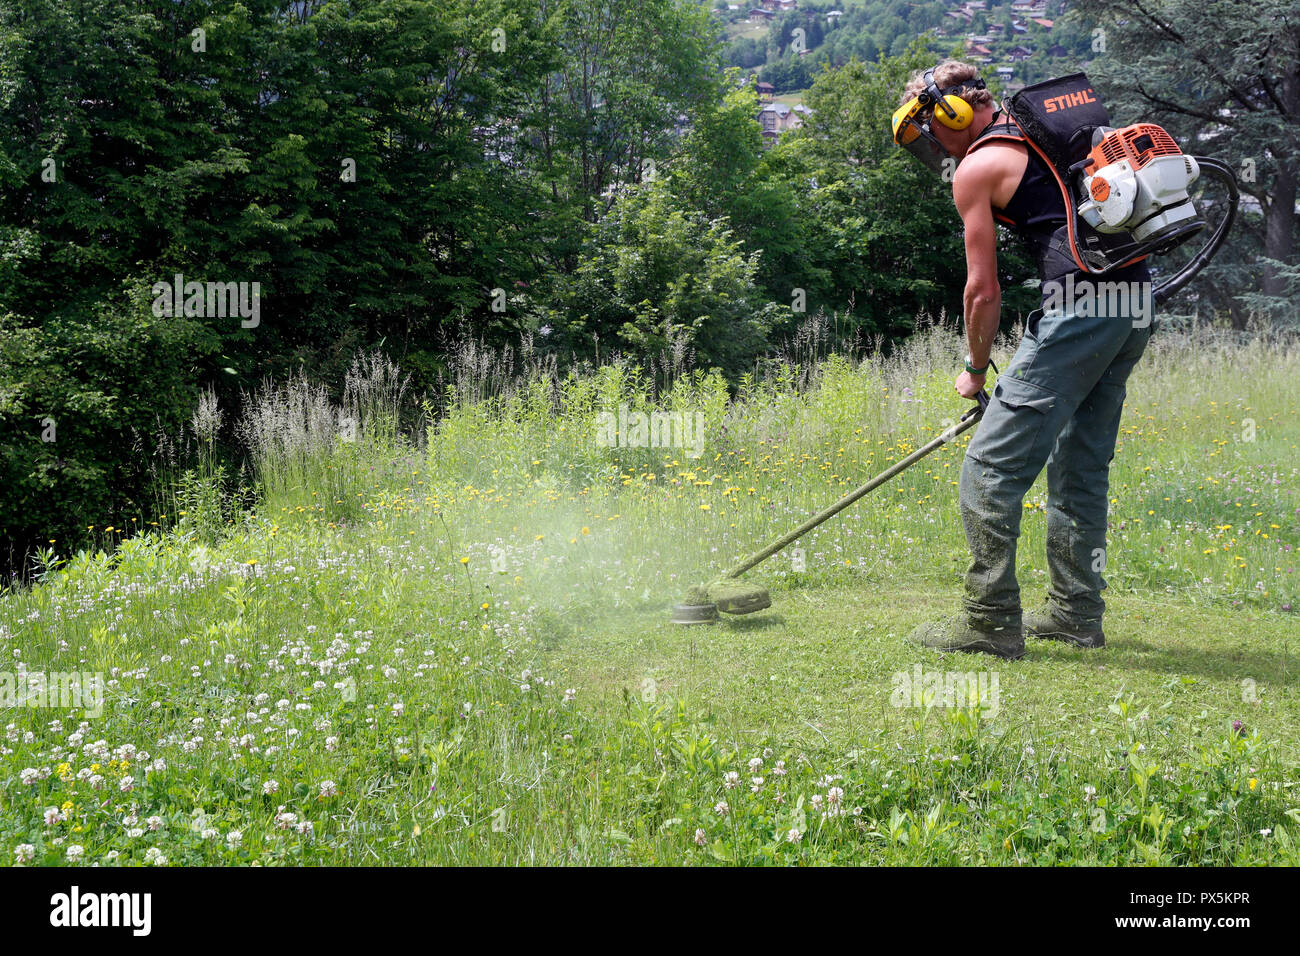 Gardner cutting grass verge with brushcutter.  France. - Stock Image